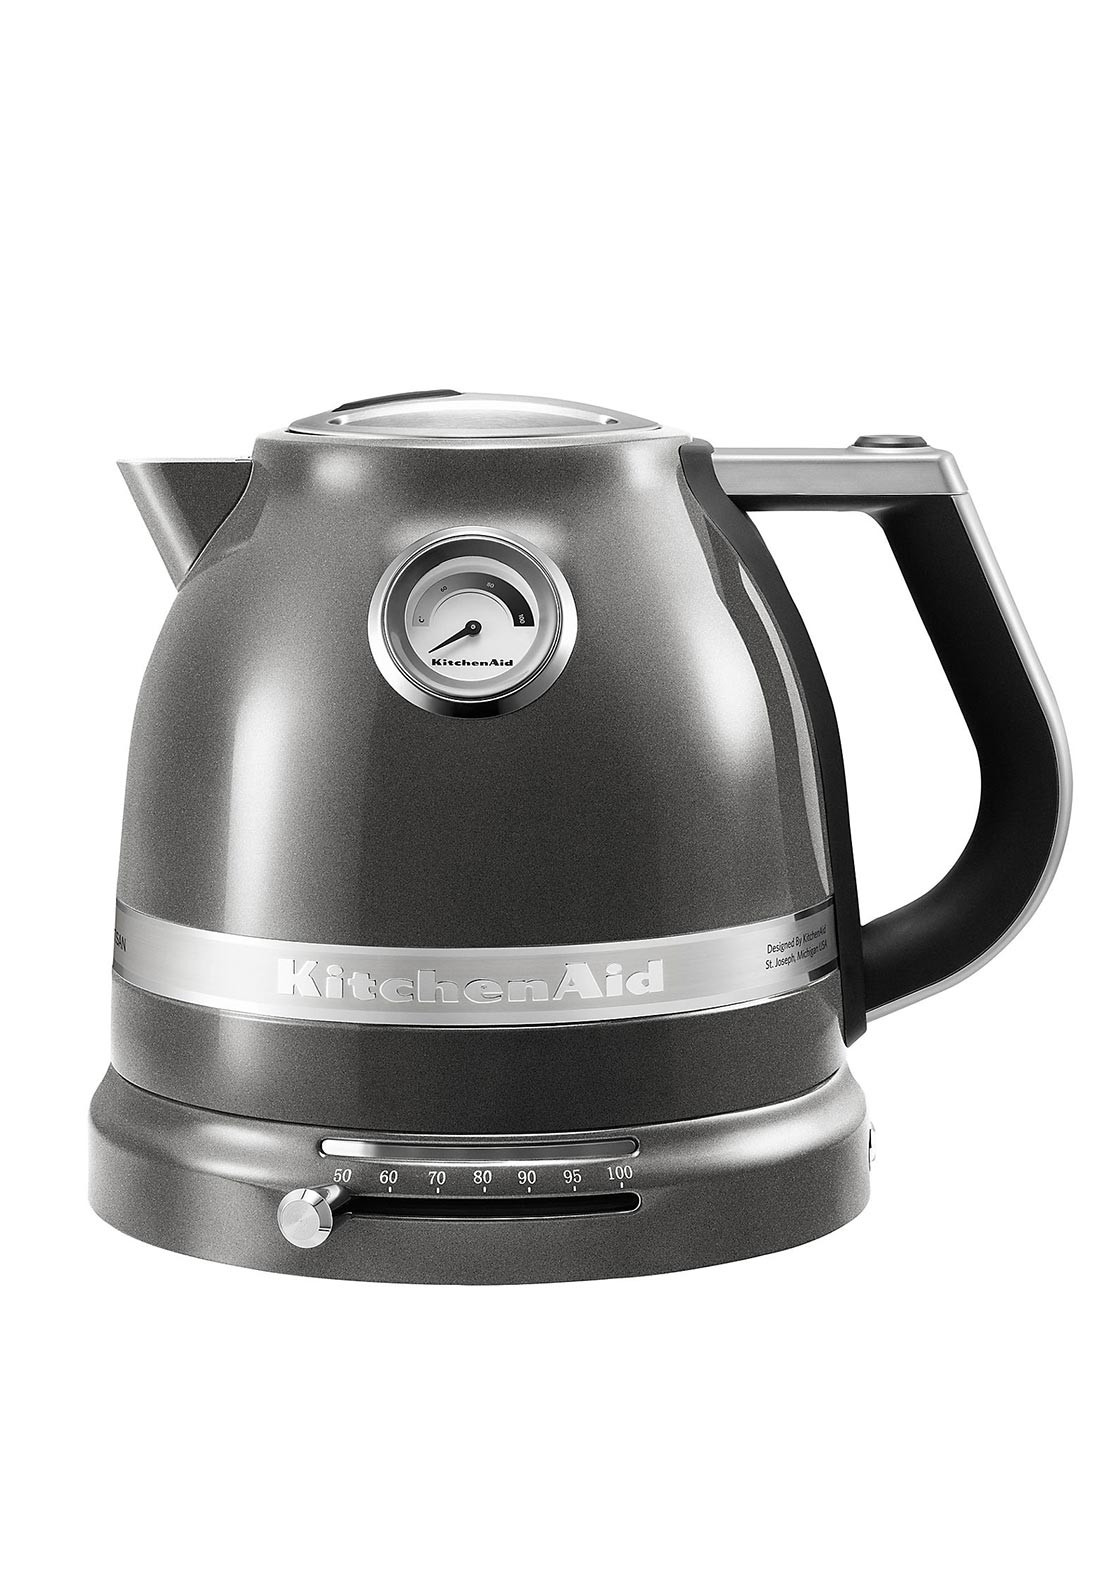 KitchenAid Artisan Kettle, Medallion Silver 1.5L